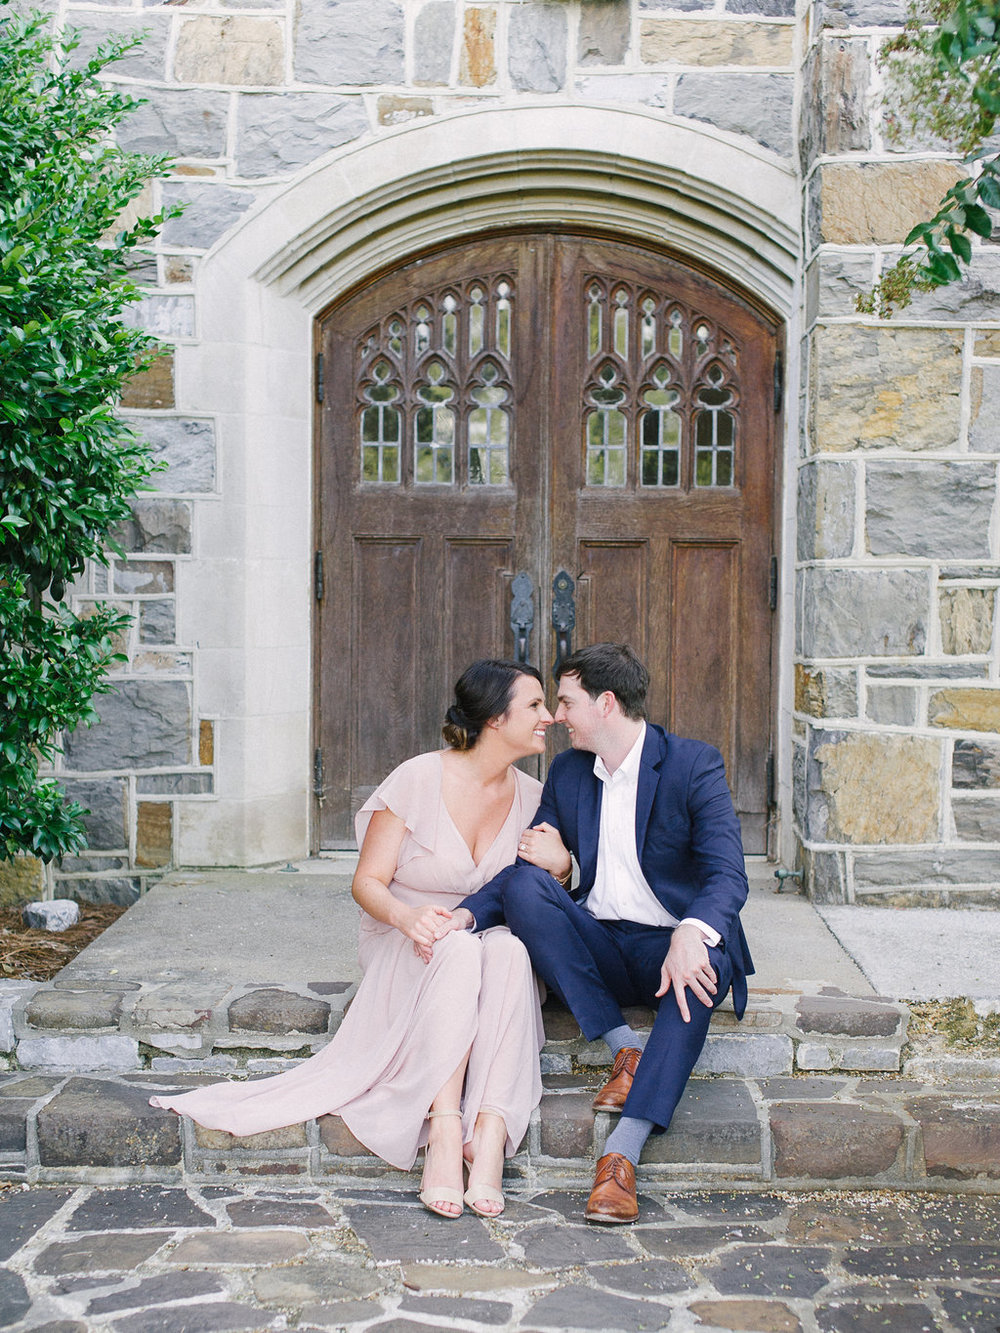 Berry-college-engagement-hannah-forsberg-atlanta-wedding-photographer-4.jpg